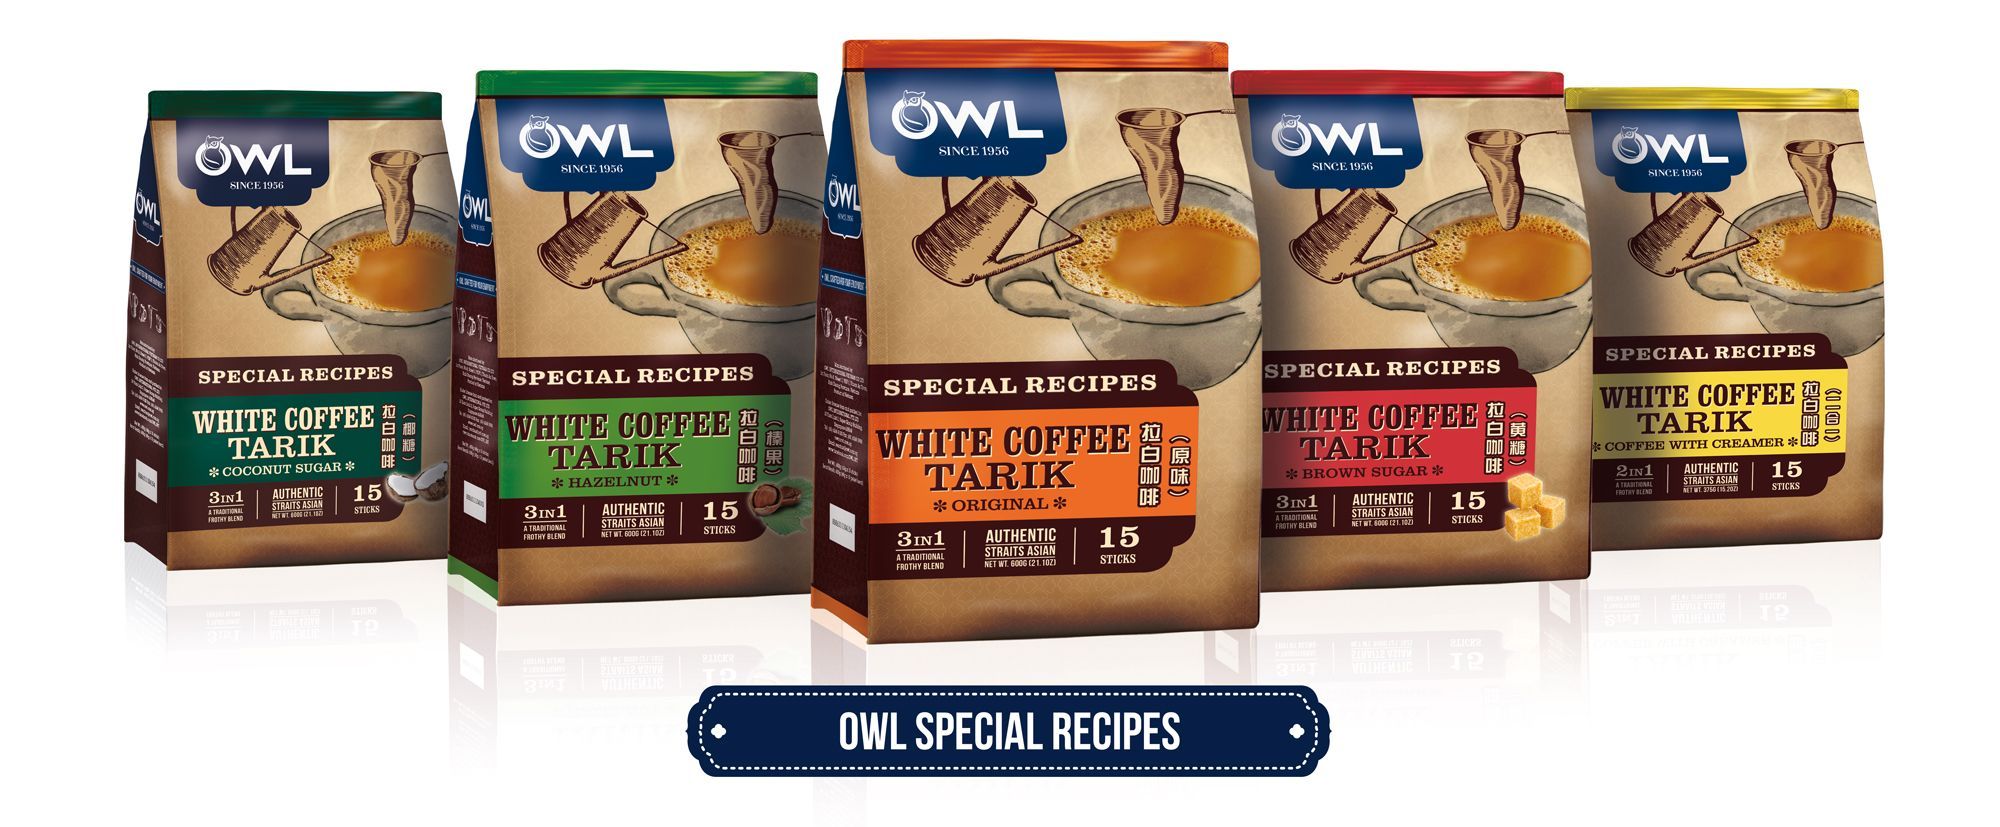 OWL Special Recipes White Coffee Tarik Packaging Port